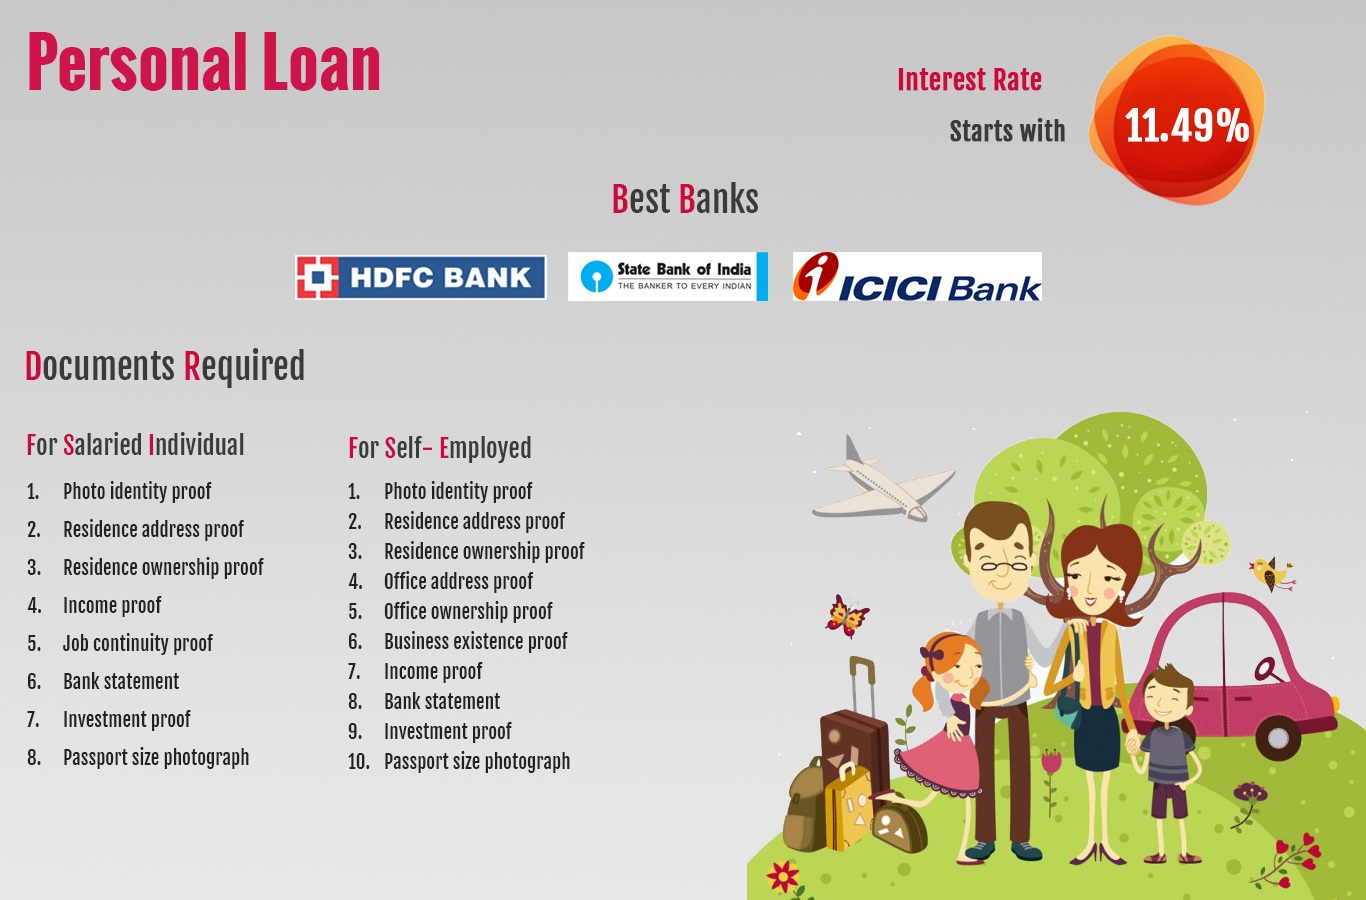 Citibank Nri Home Loan Application Form